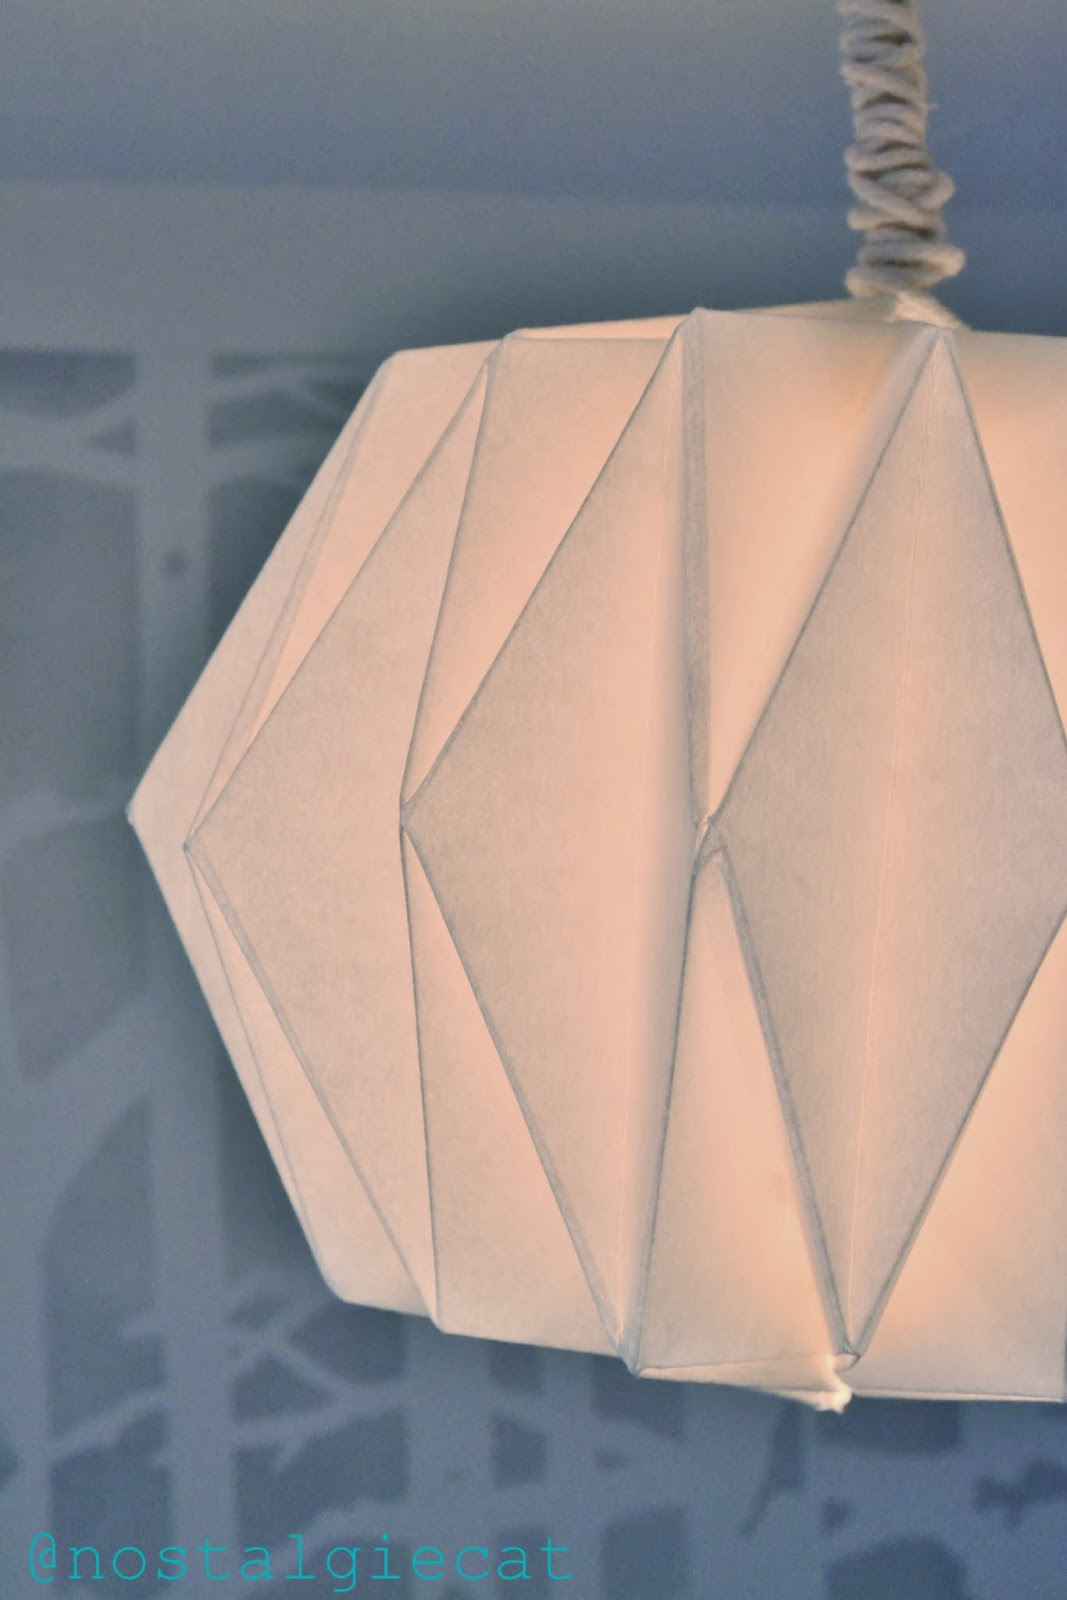 Nostalgiecat diy origami paper lampshade the second most important thing to consider when making an origami lampshade is the paper you use aloadofball Image collections